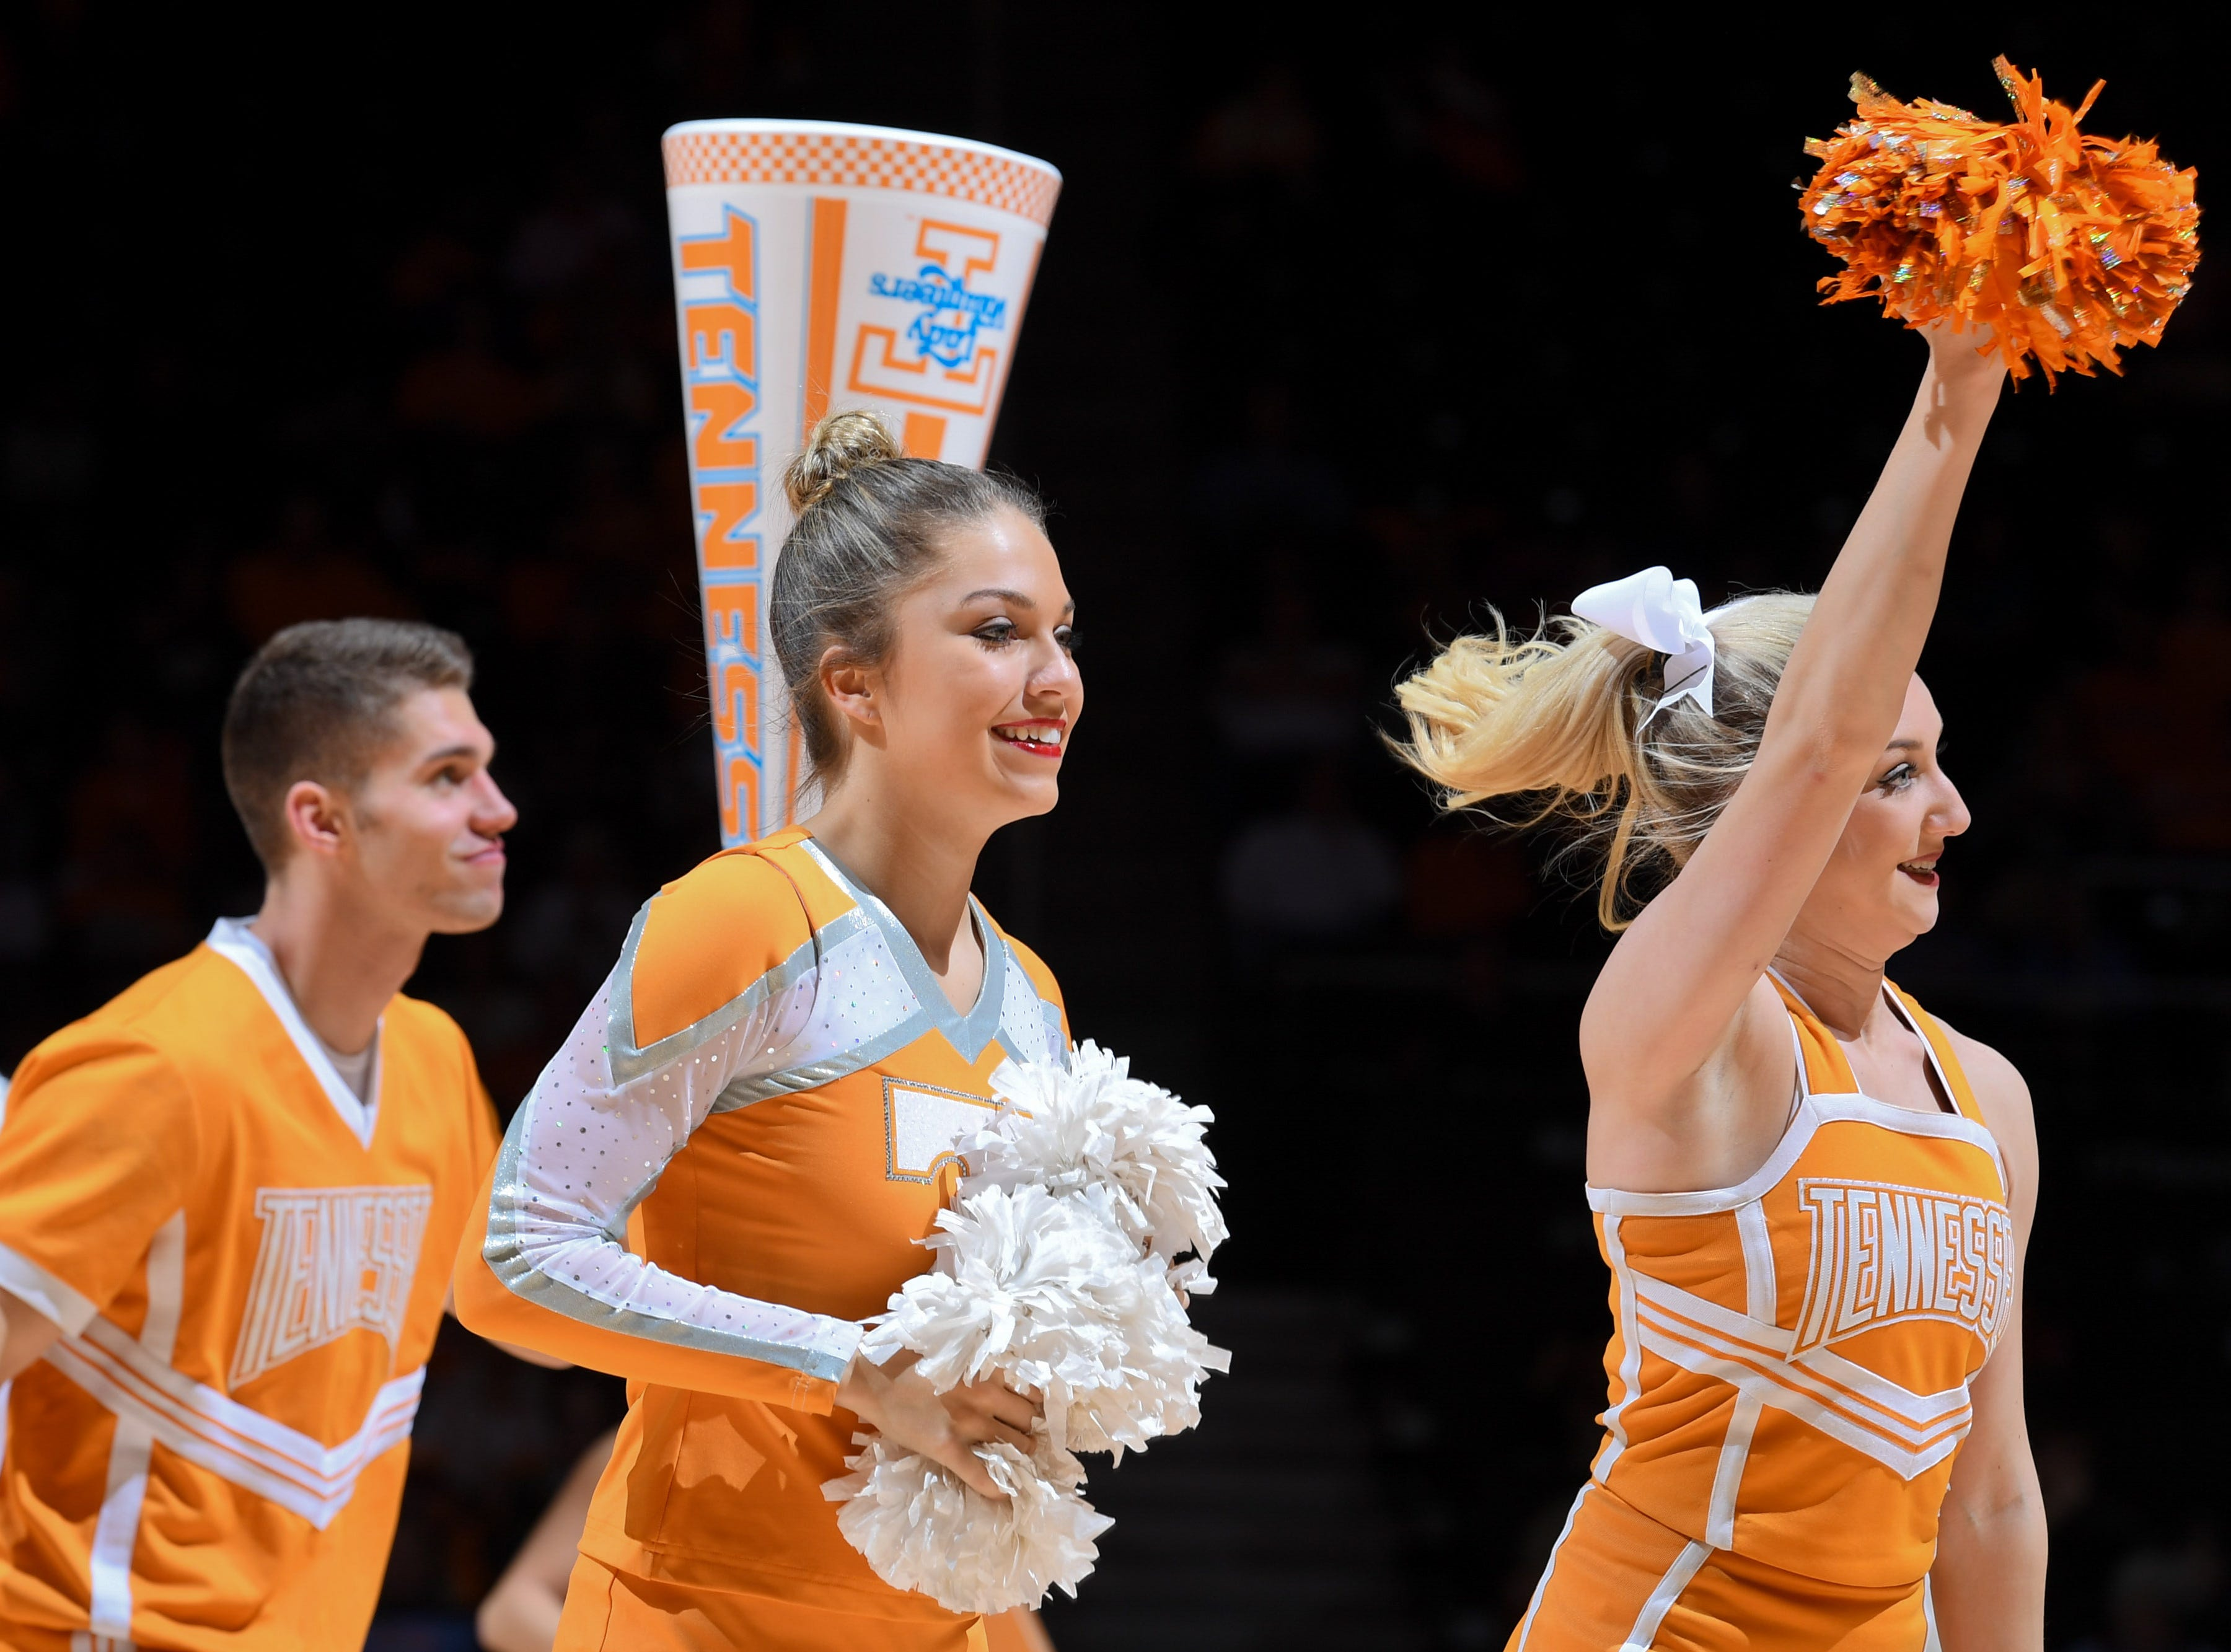 Jan 7, 2018; Knoxville, TN, USA; The Tennessee Lady Volunteers cheerleaders perform during the second half against the Vanderbilt Commodores at Thompson-Boling Arena. Tennessee won 86 to 73.